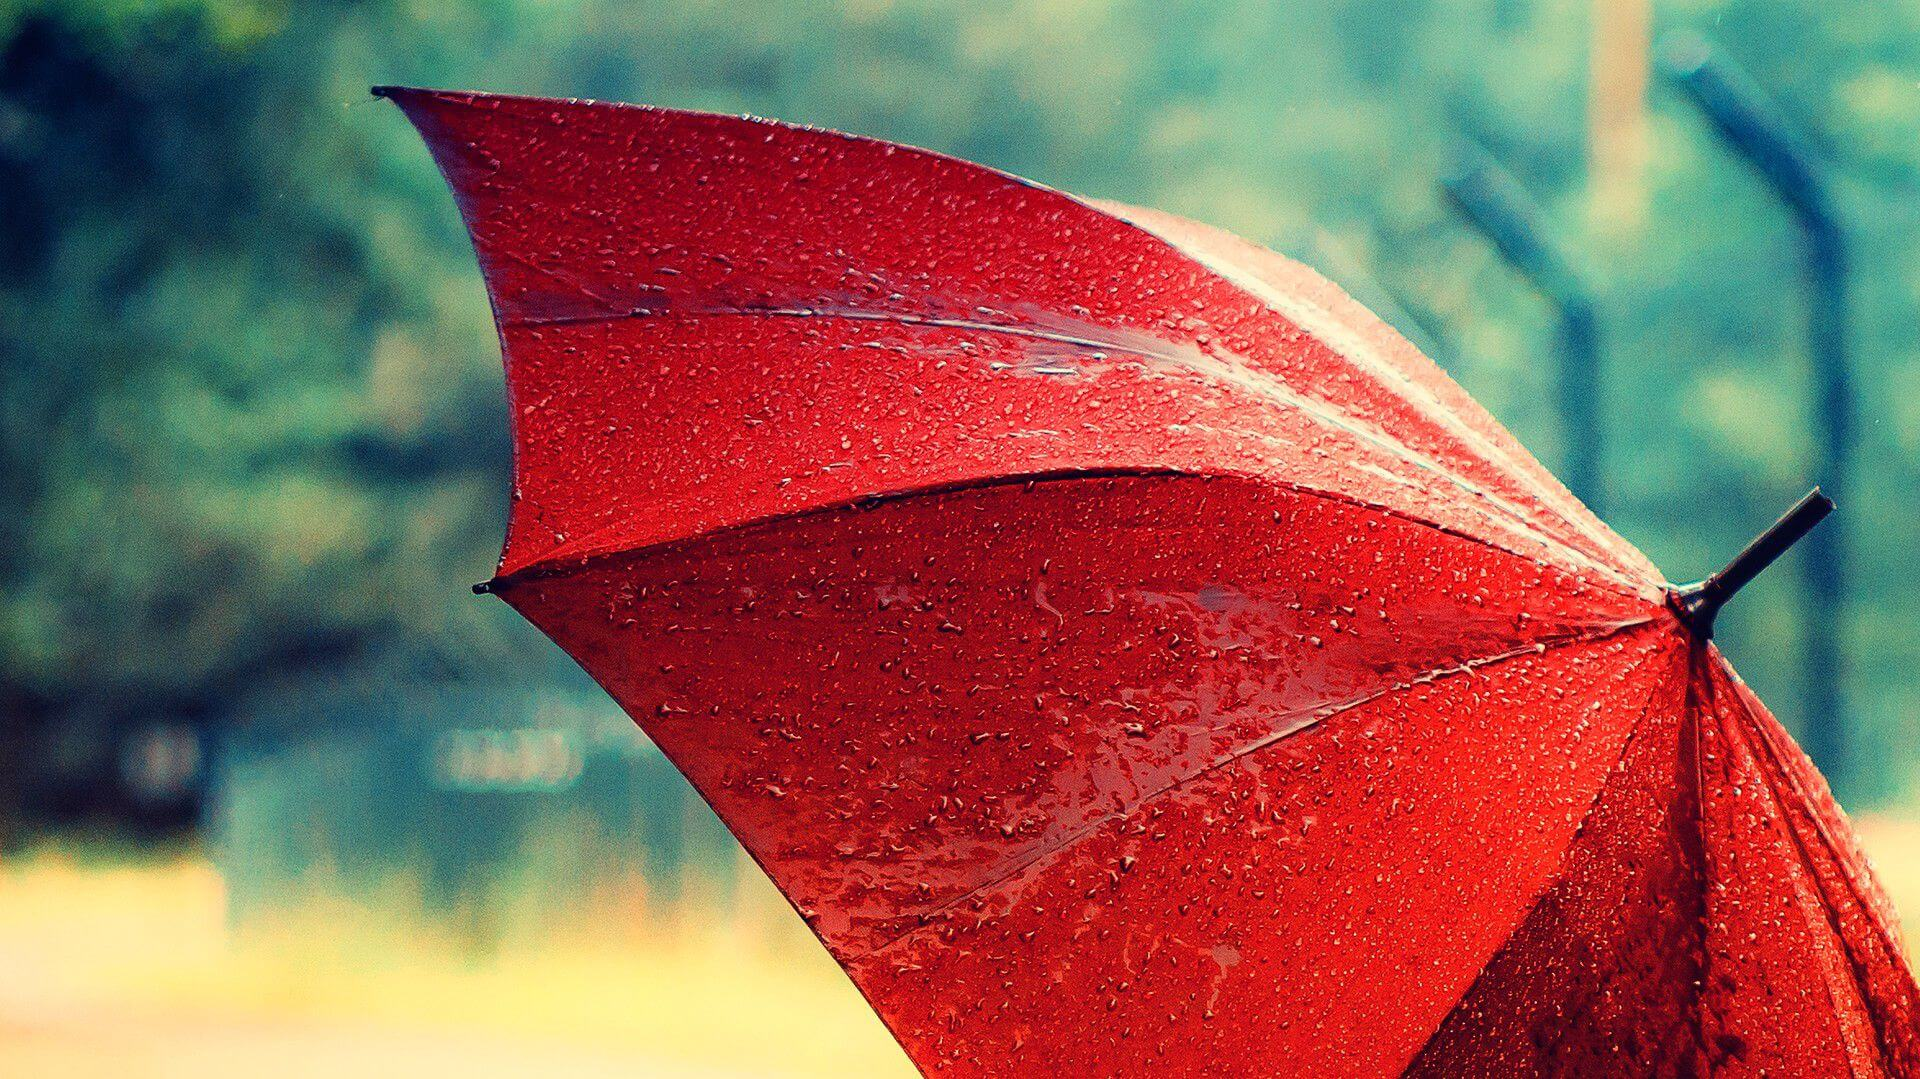 HD Rain Wallpapers For Your Desktop (6)